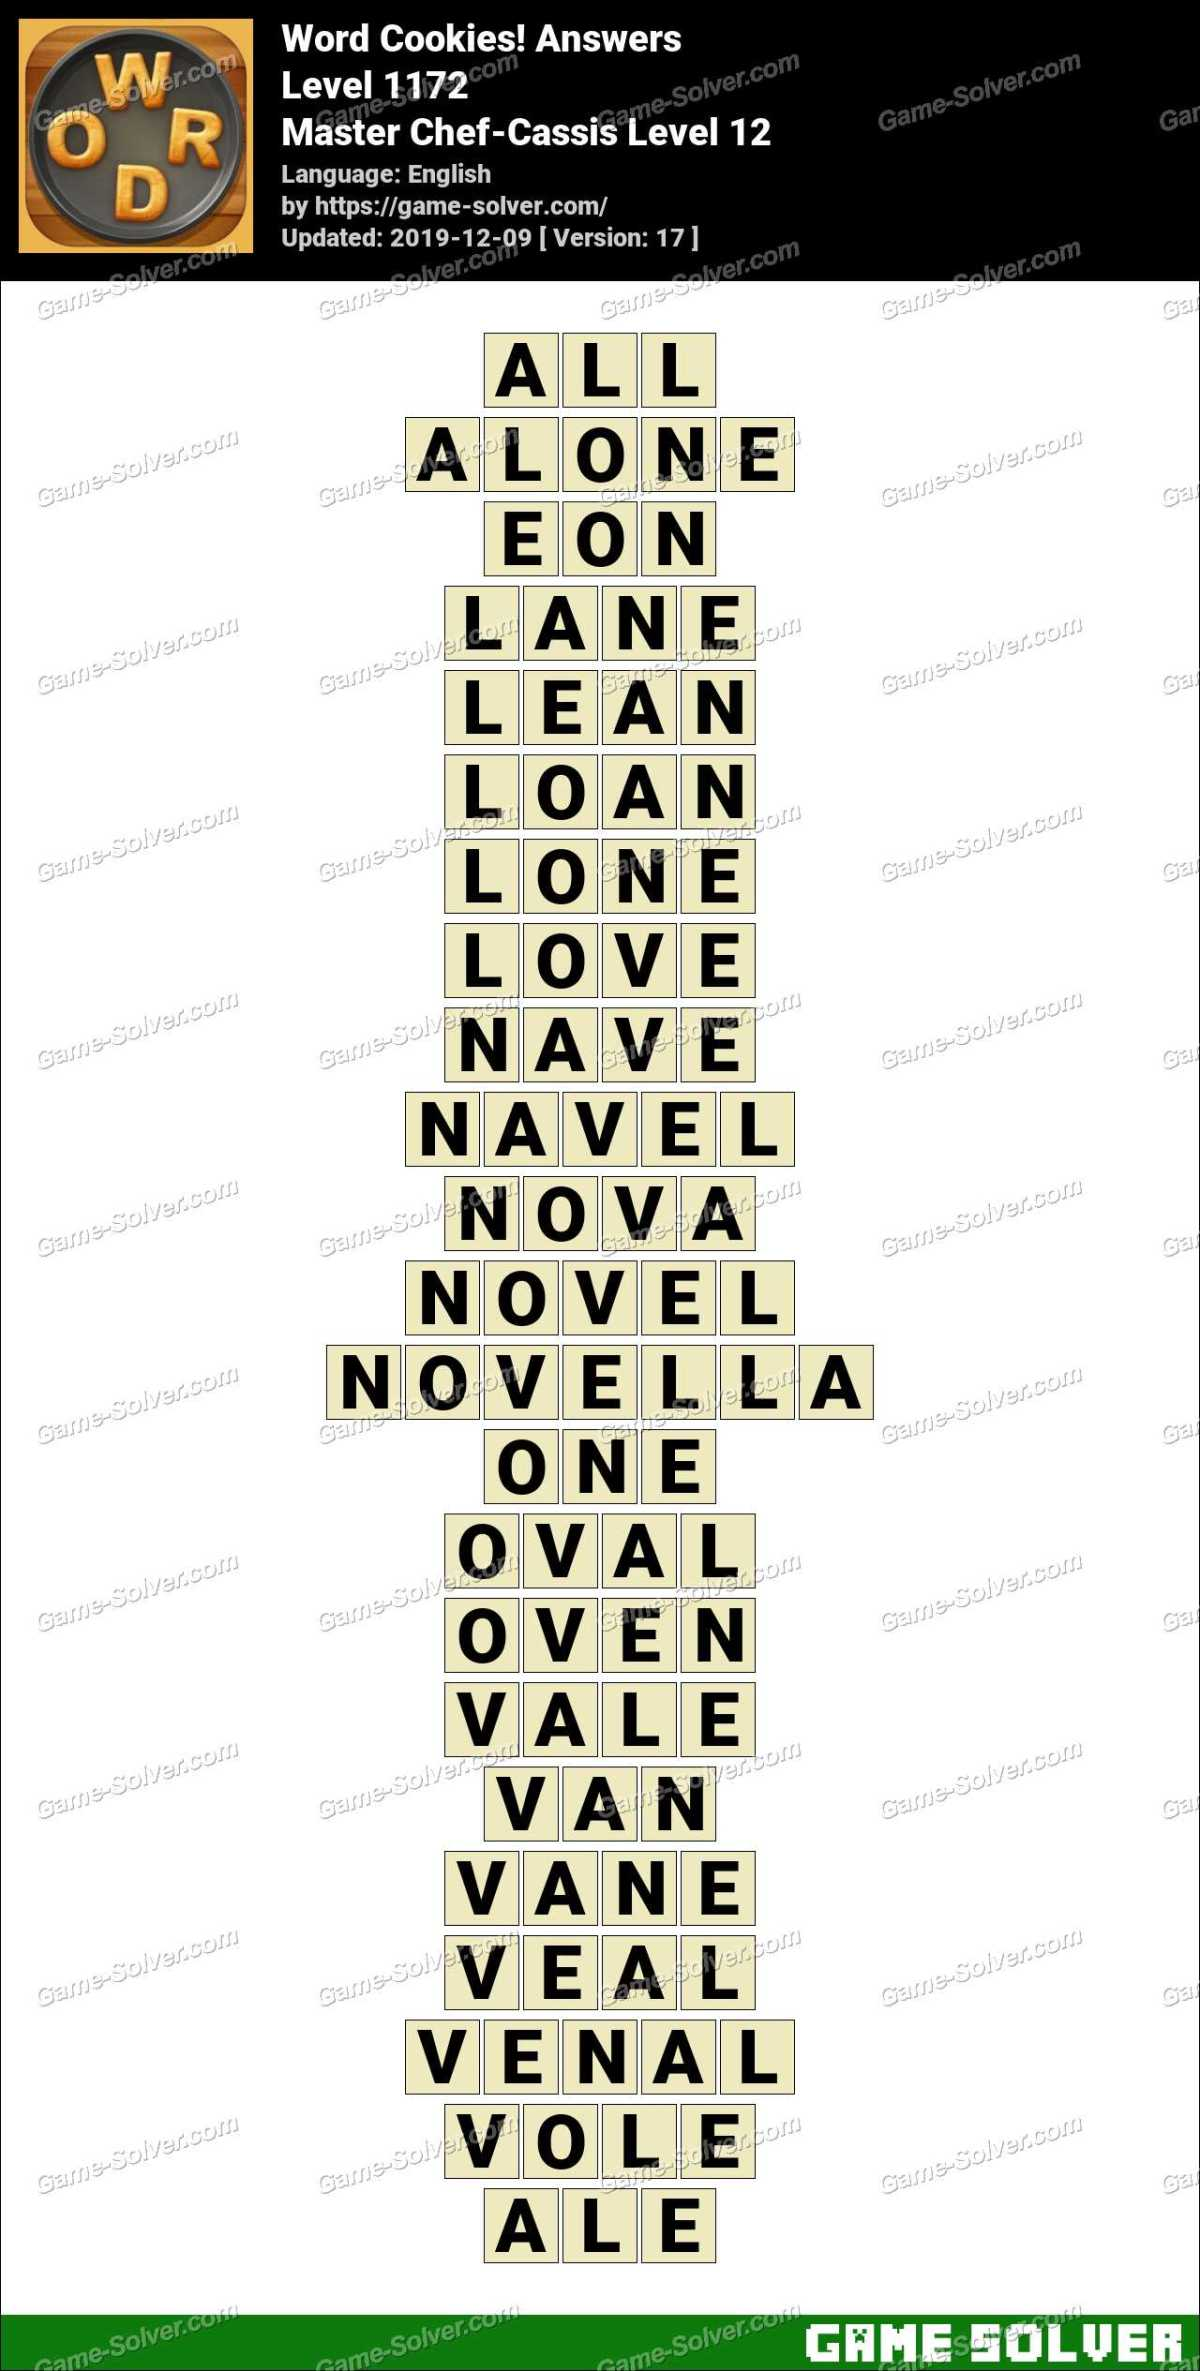 Word Cookies Master Chef-Cassis Level 12 Answers